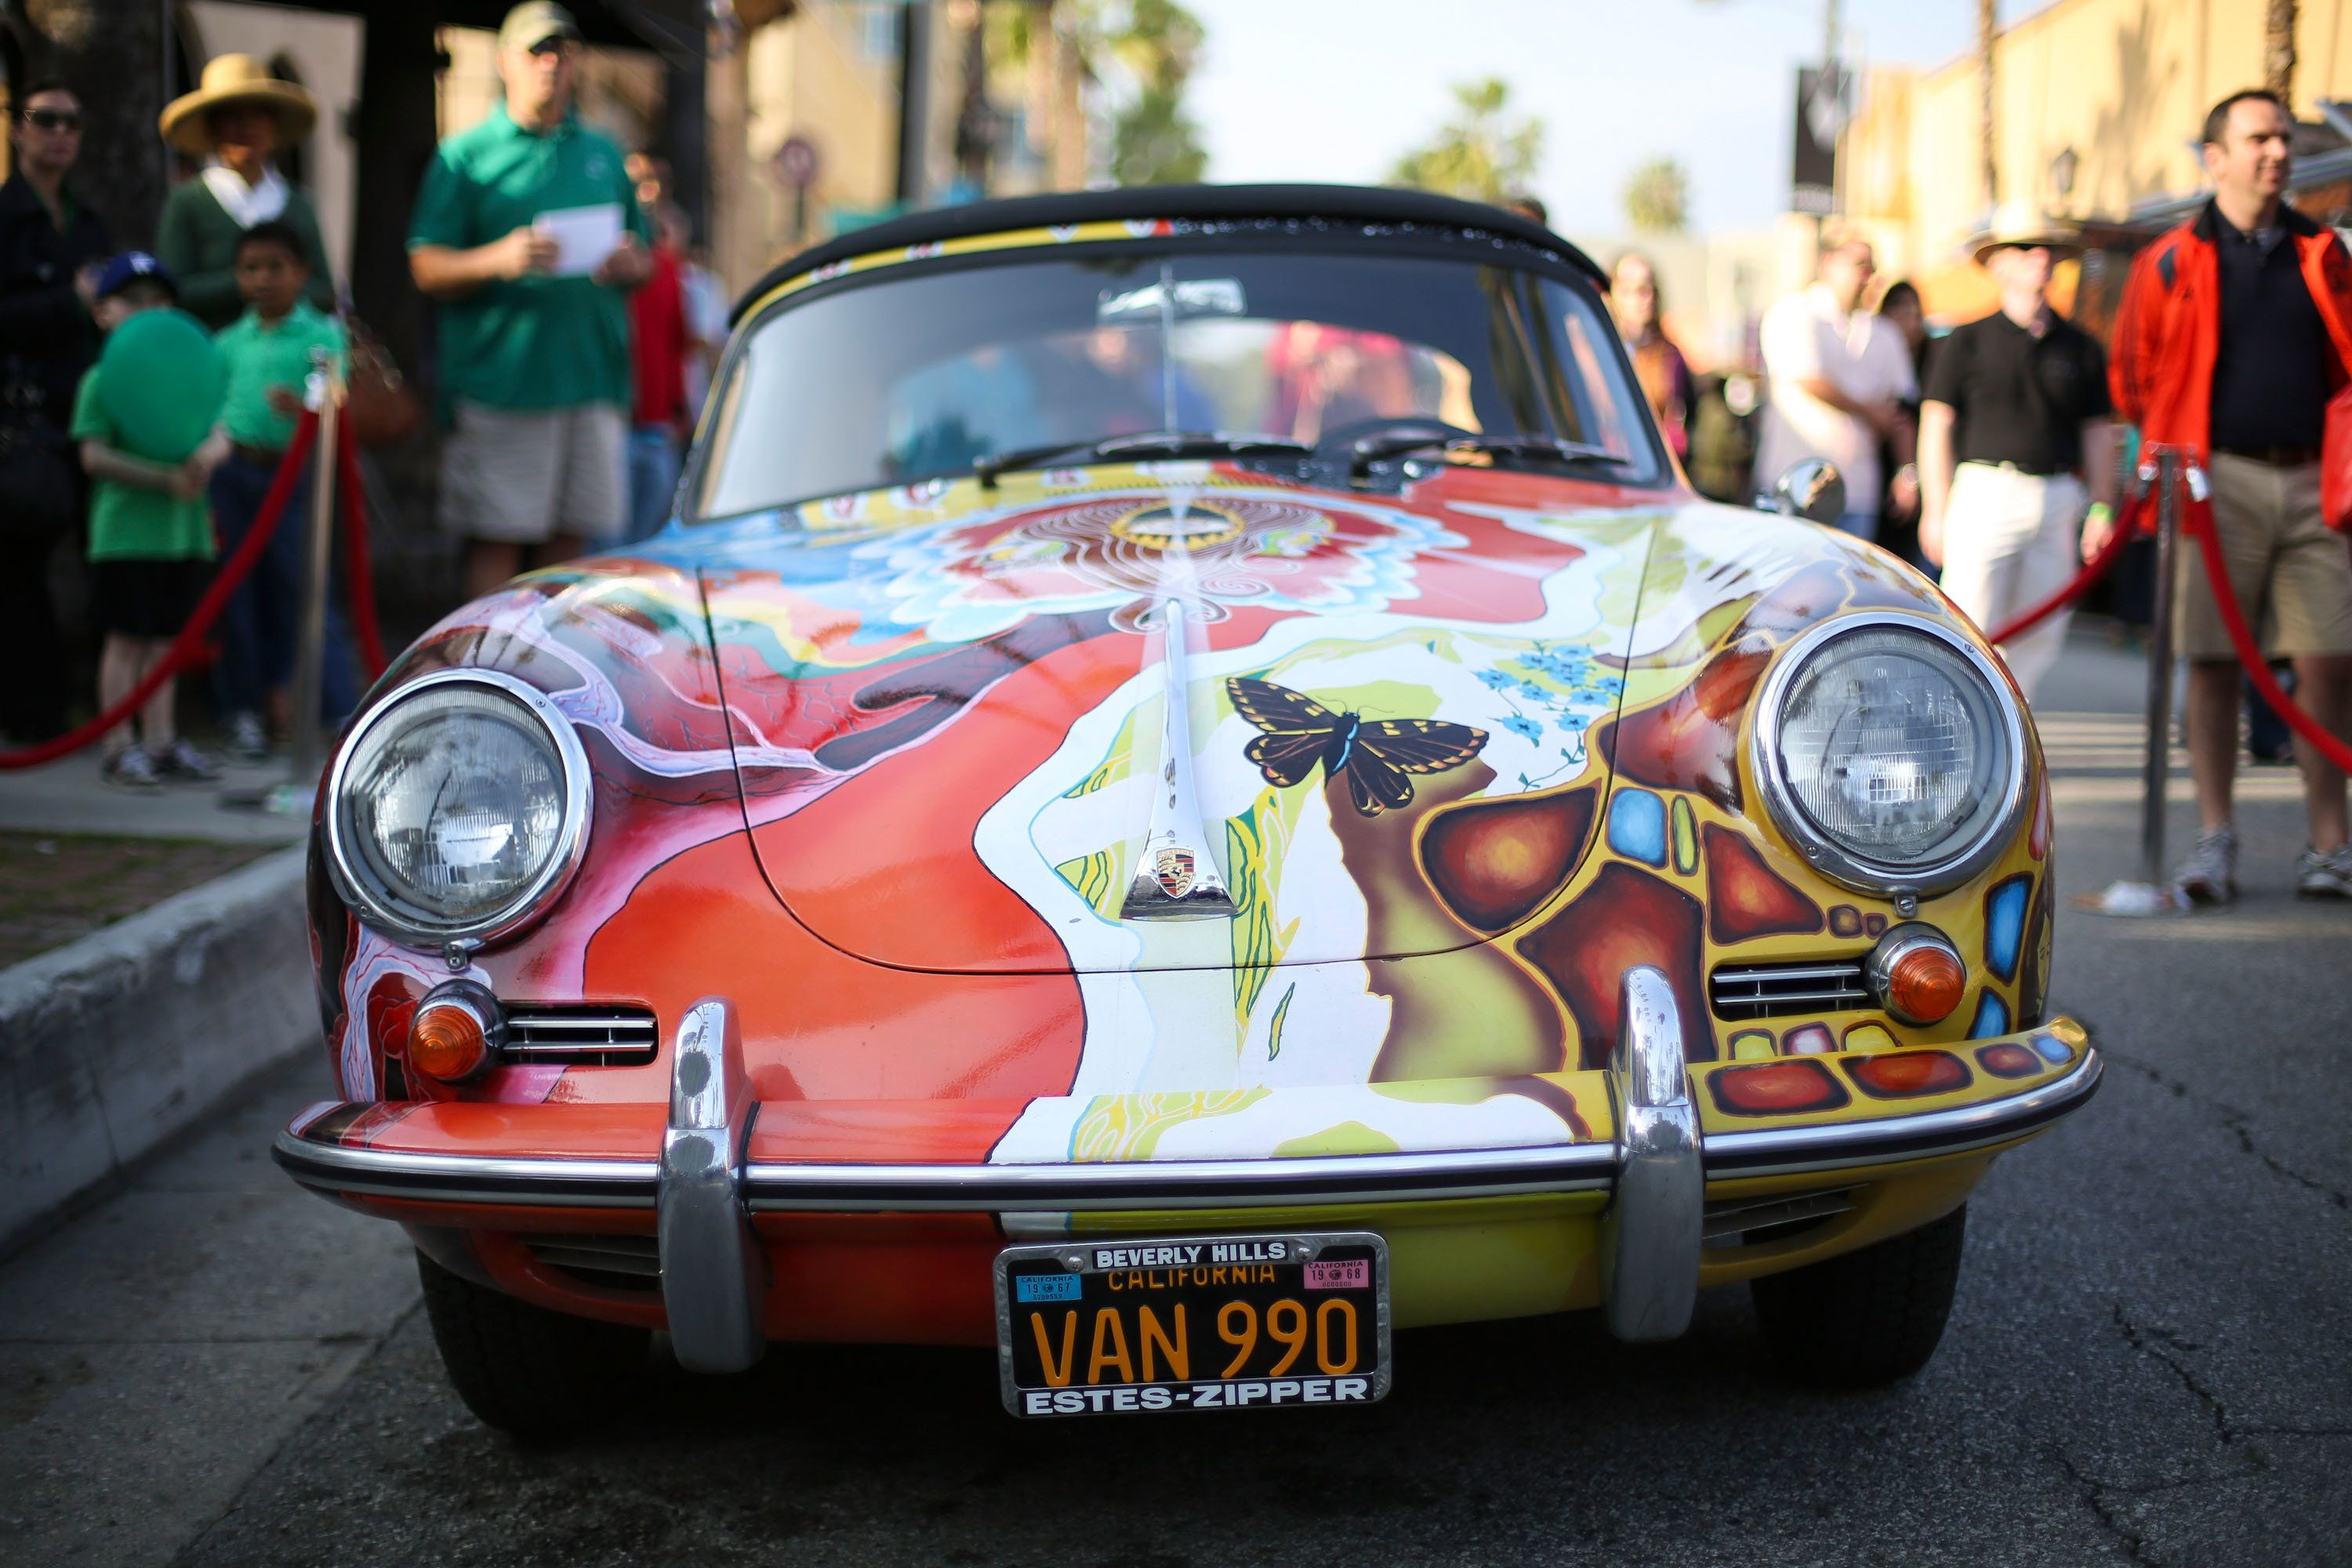 PASADENA, CA - MARCH 17:  A general view of Janis Joplin's hand-painted, psychedelic, 1965 Porsche 356c Cabriolet on display during the opening night of 'One Night With Janis Joplin' at Pasadena Playhouse on March 17, 2013 in Pasadena, California.  (Photo by Imeh Akpanudosen/Getty Images)